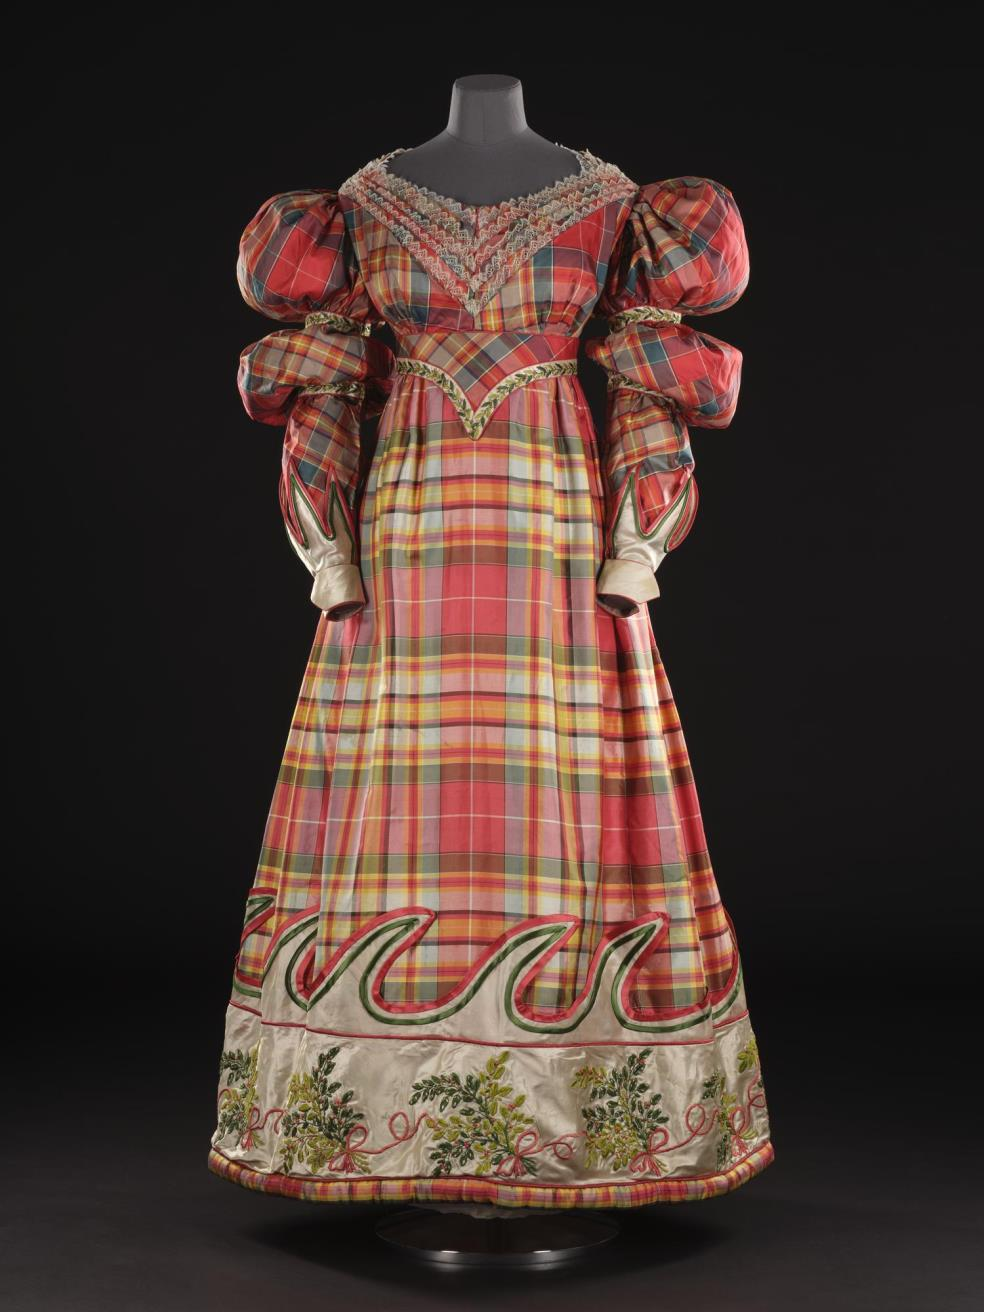 Woman's high-waisted dress of silk, with a lace-trimmed bodice and a band of white satin on the skirt, worn by Mrs Macpherson of Cluny: Scottish, 1832.